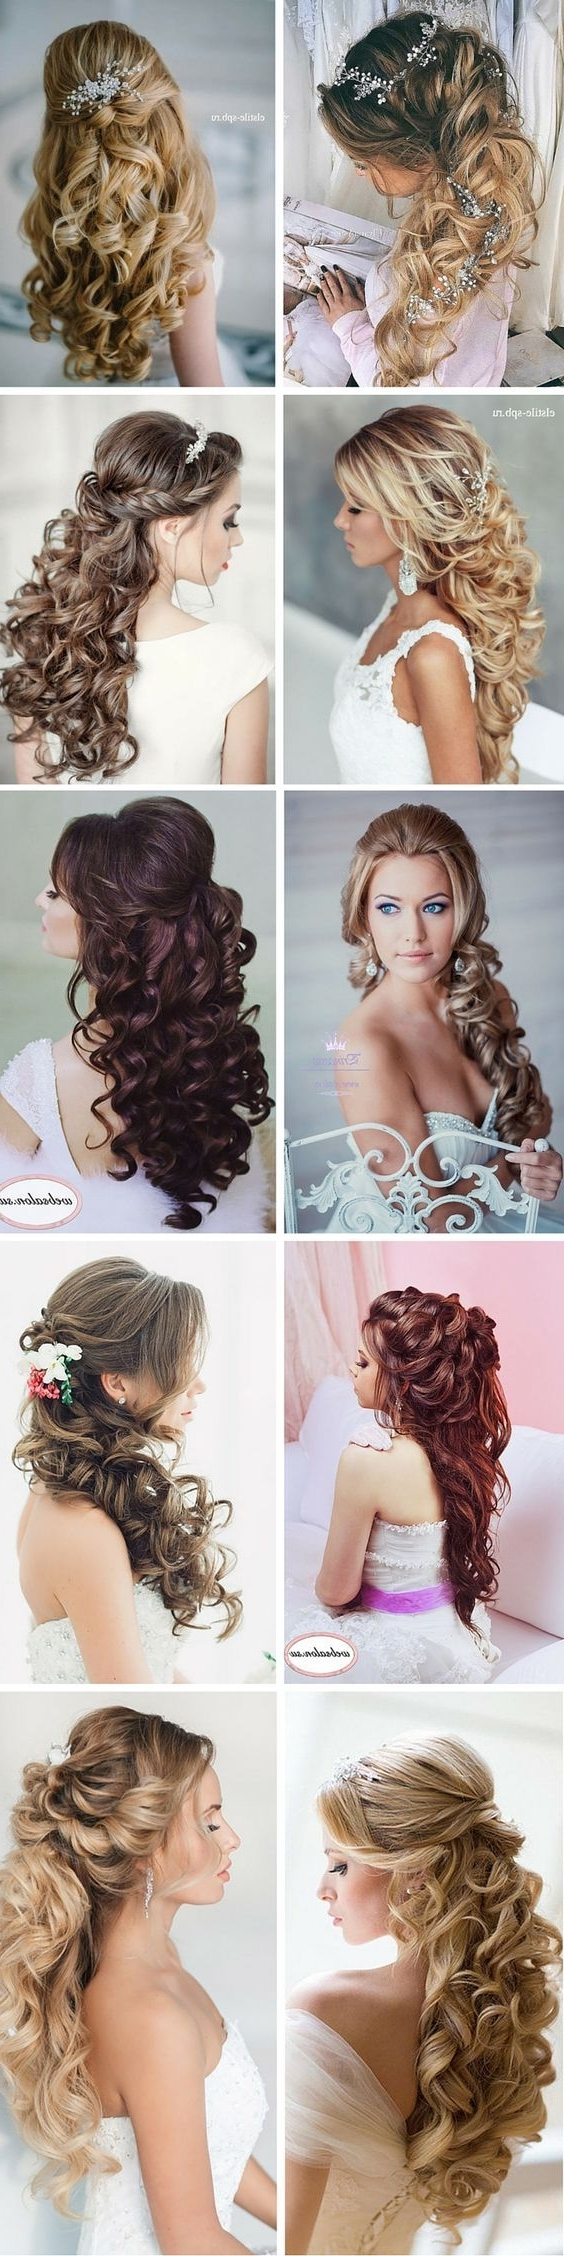 Favorite Wedding Hairstyles For Long Down Curls Hair Intended For Elegant Curly Half Up Half Down Wedding Hairstyles / Http://www (View 7 of 15)